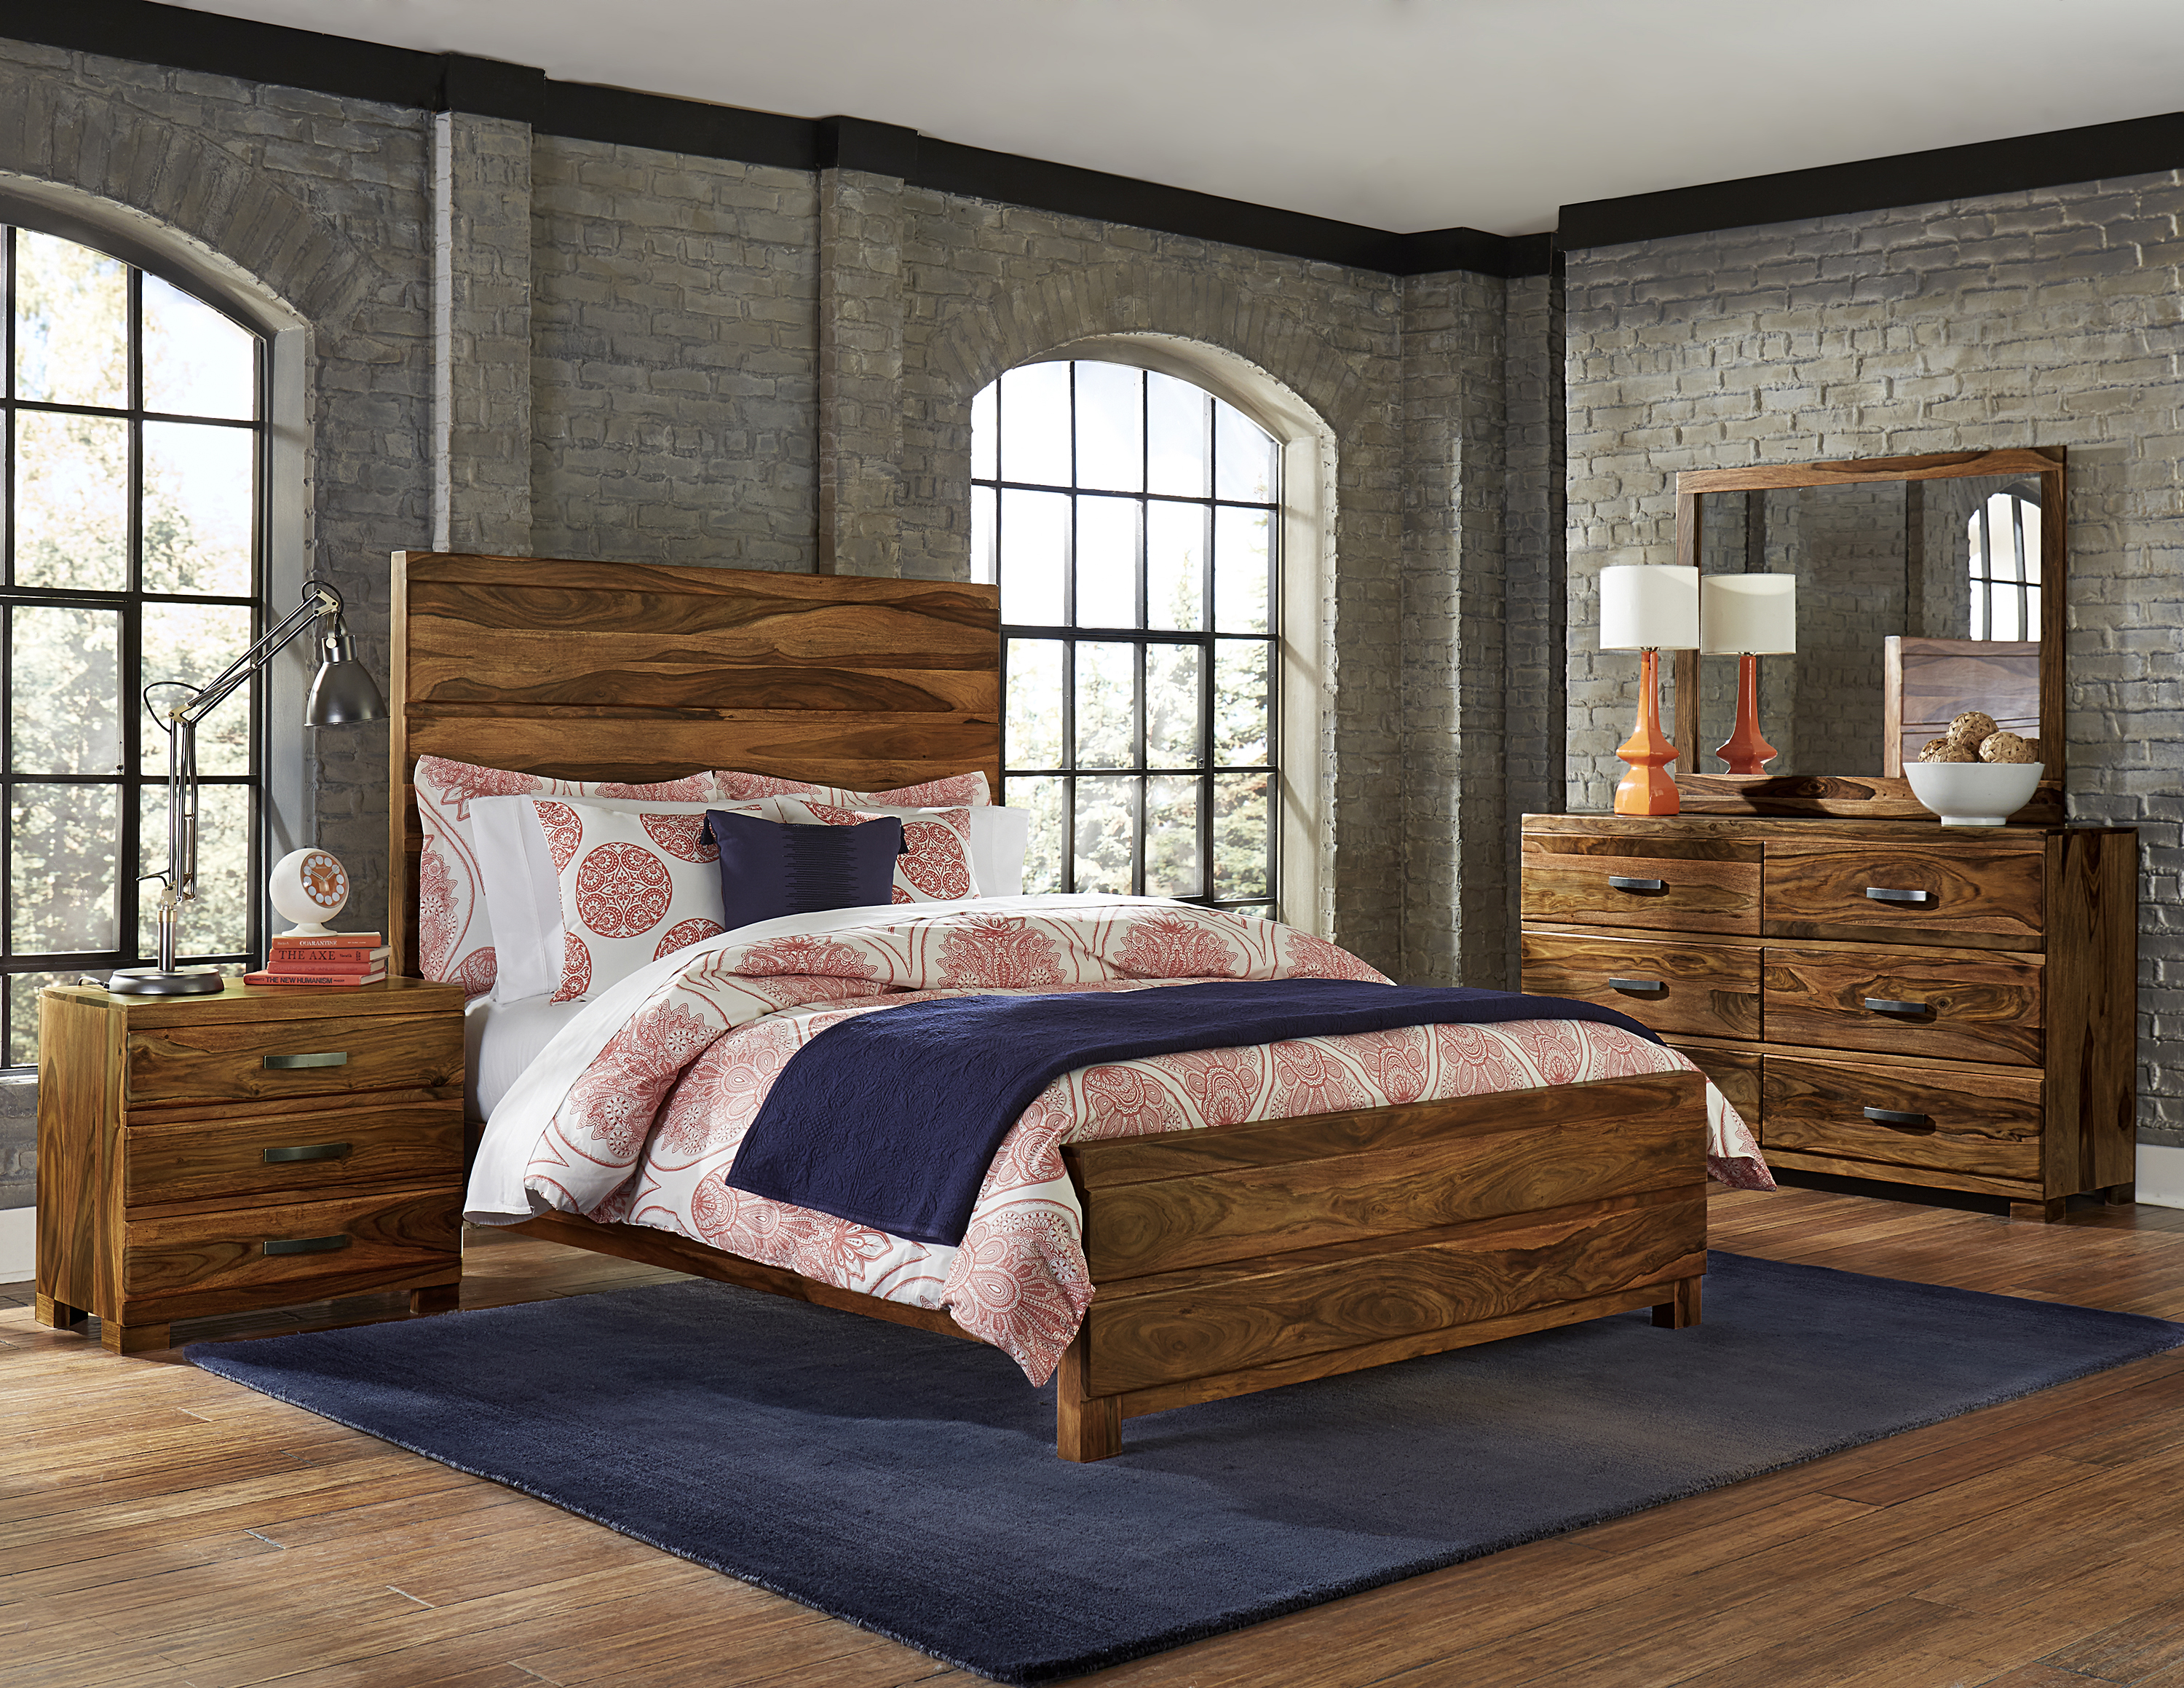 Hillsdale Madera 4-Piece Platform Bedroom Set - Queen - Item Number: 1406BQR4SET